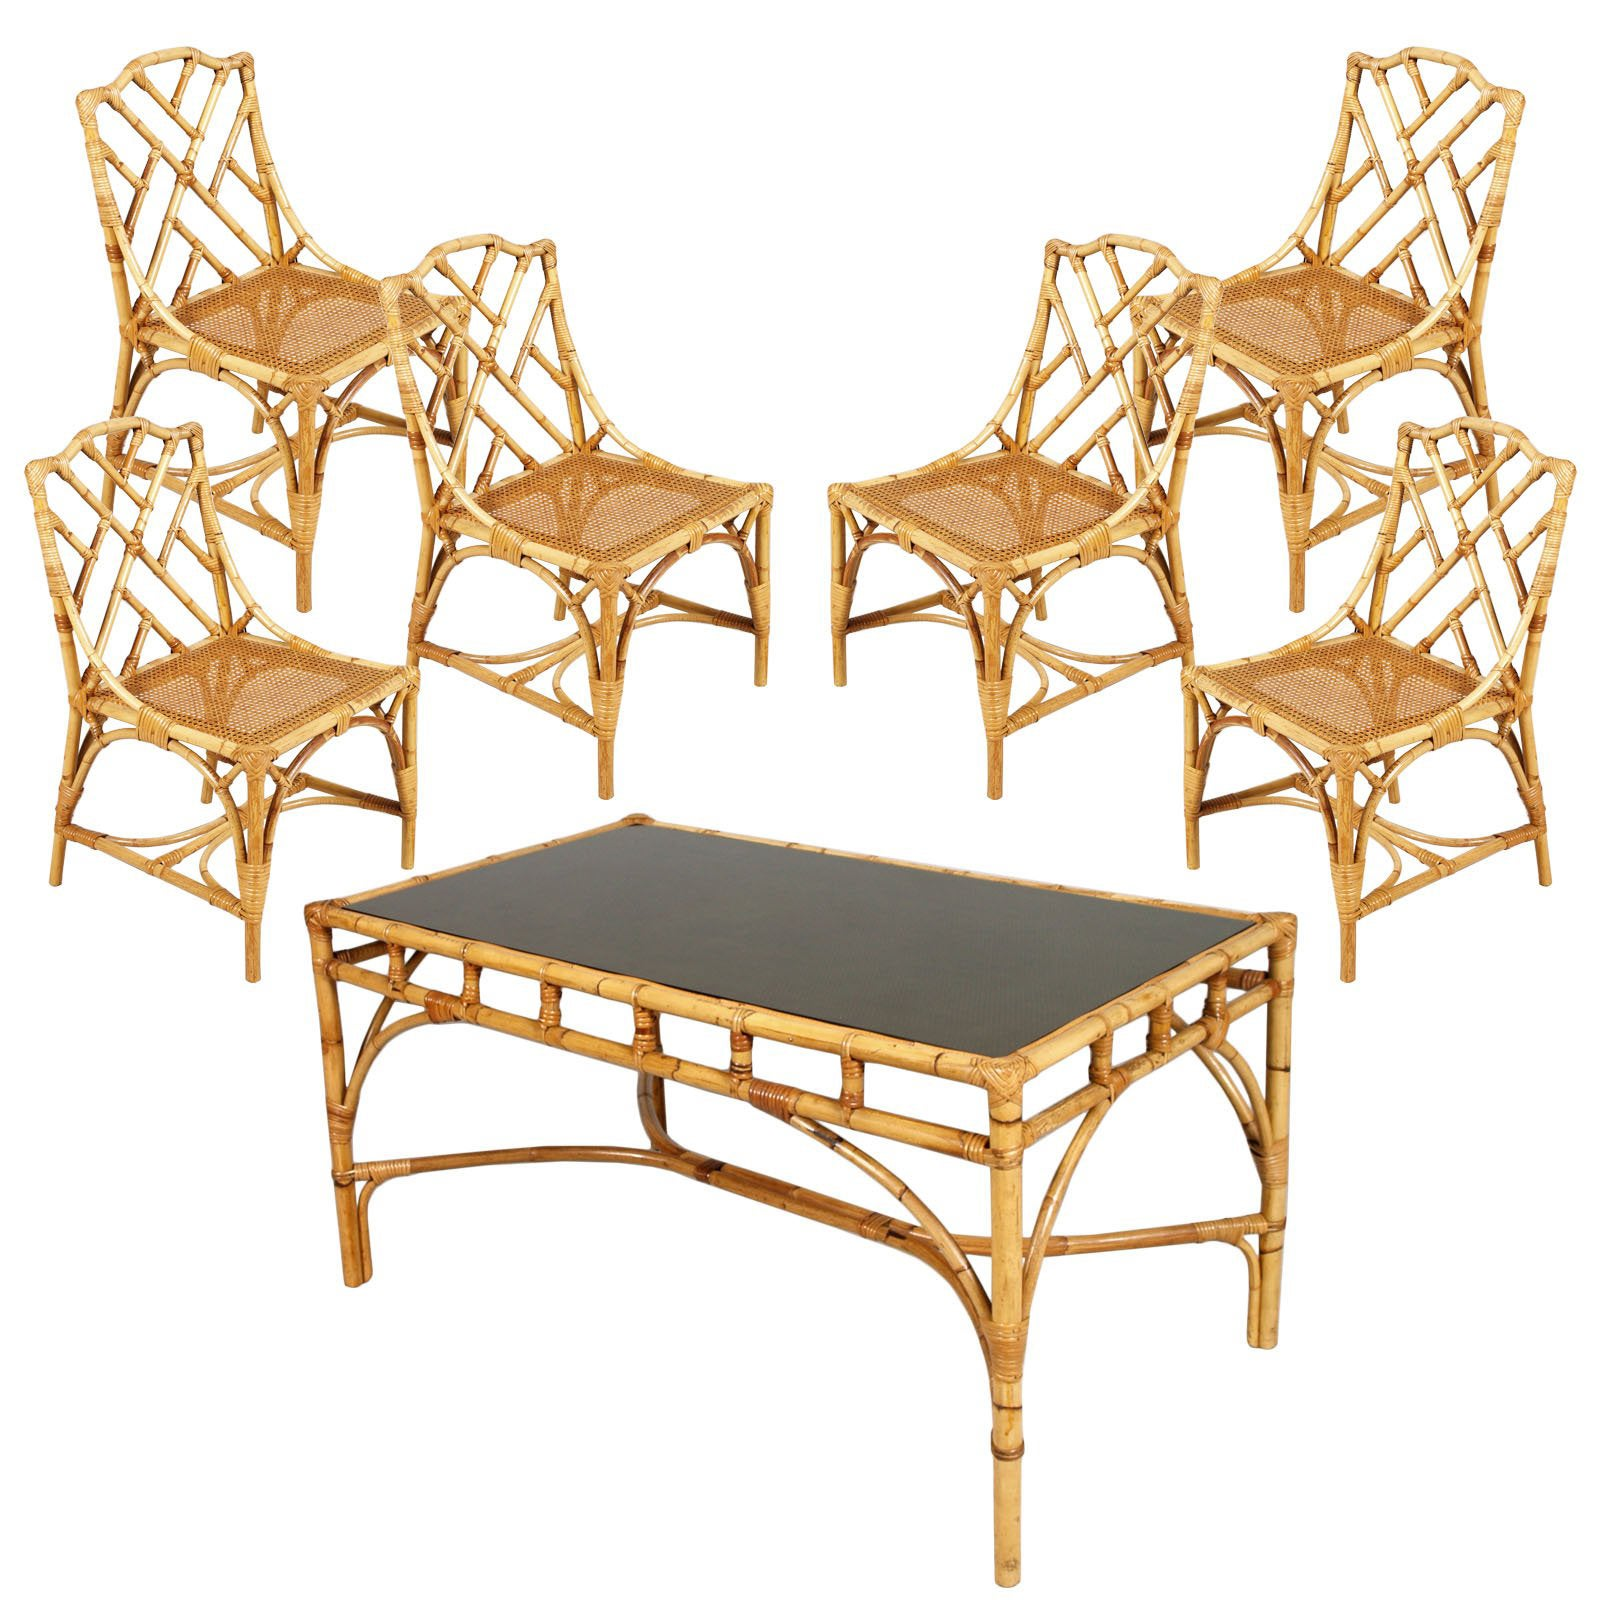 Mid 20th century six rattan bamboo chinese chippendale style chairs and table for sale at 1stdibs